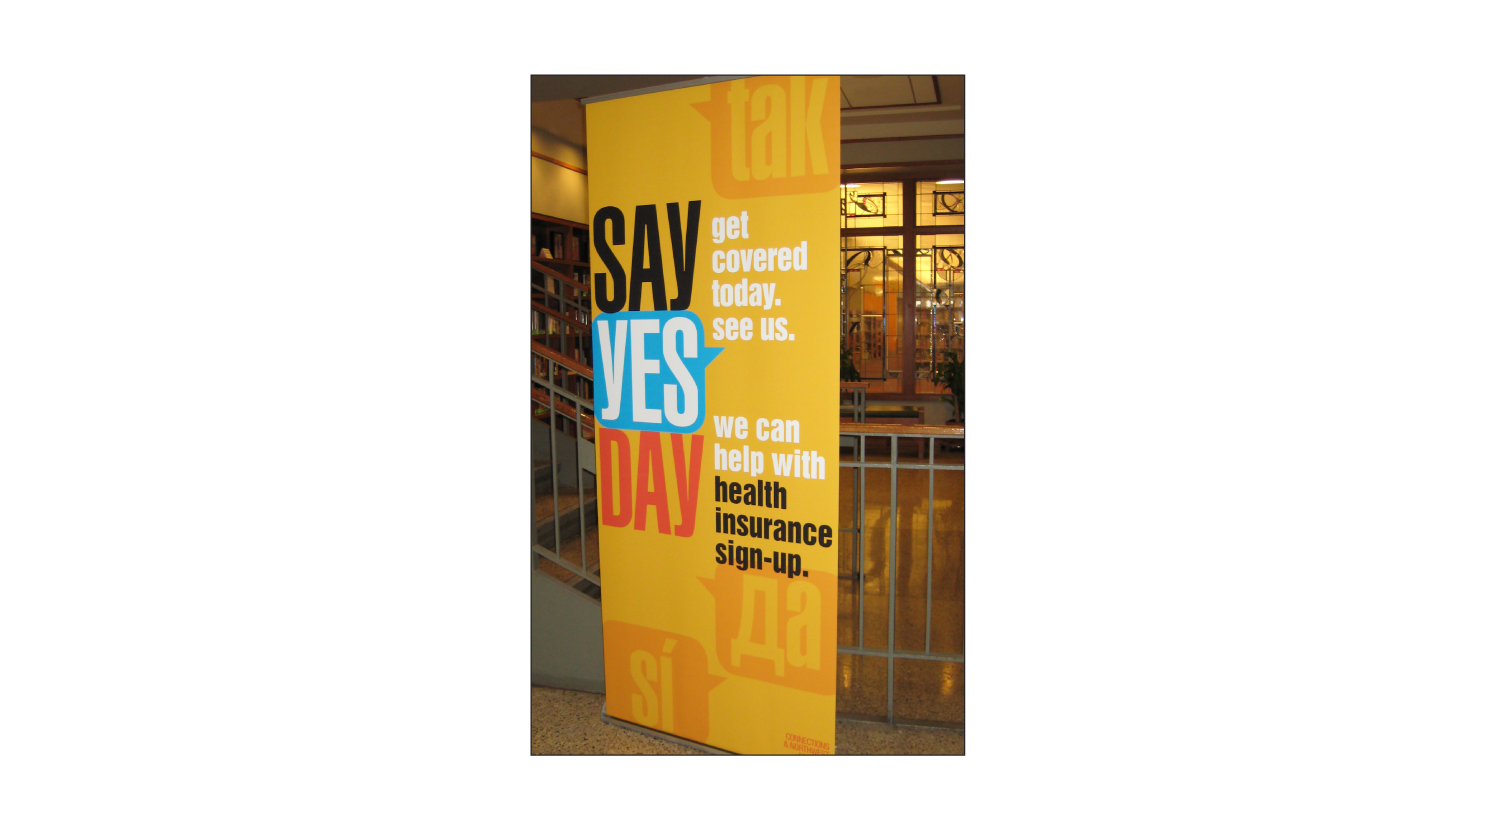 messagegallery-getcovered-4.png